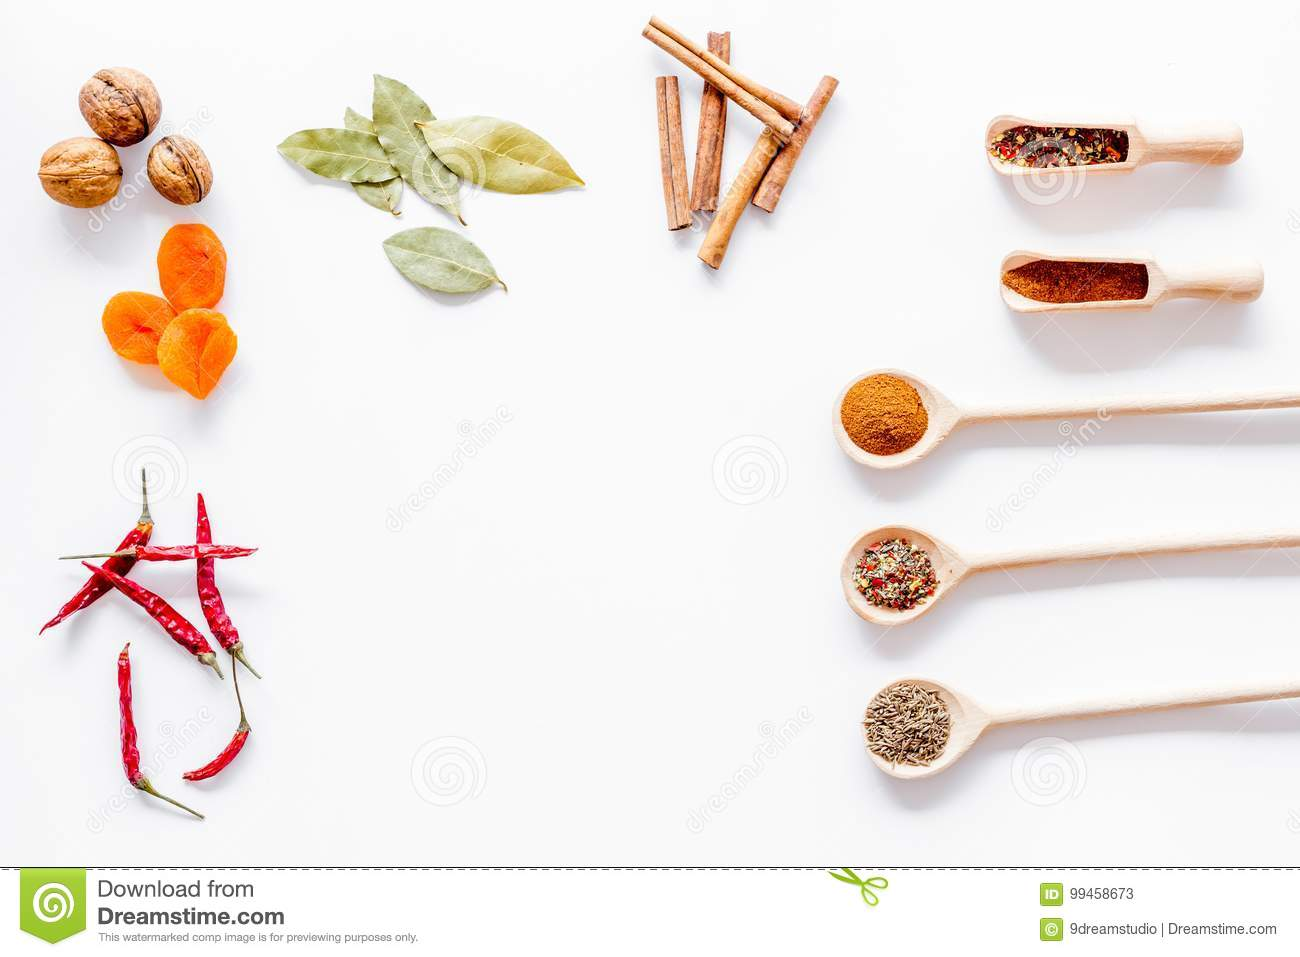 Spicy Food Cooking With Spices And Dry Herbs White Kitchen Desk